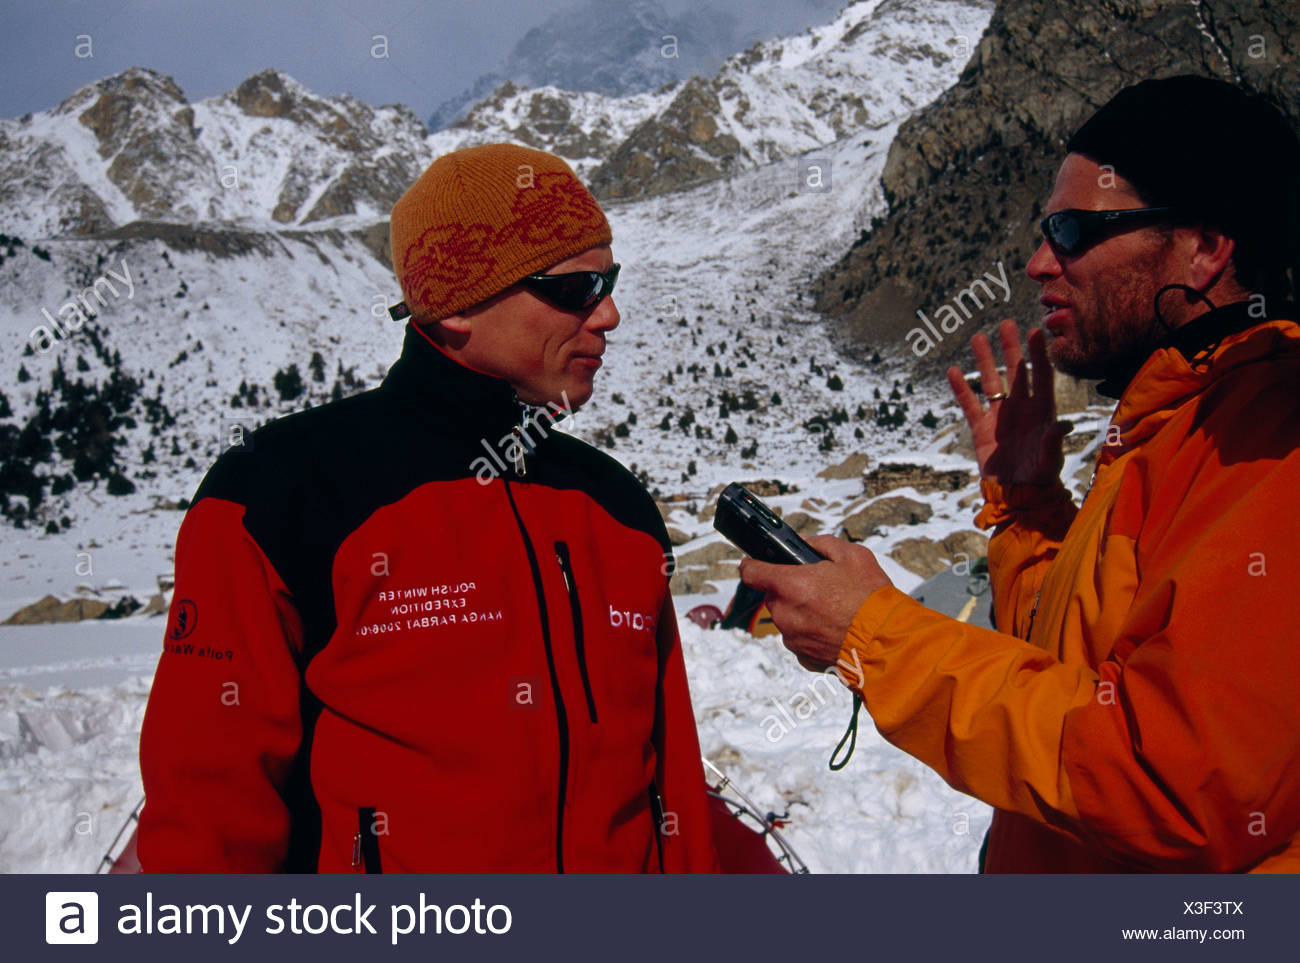 A National Geographic writer interviews an expedition team member. - Stock Image